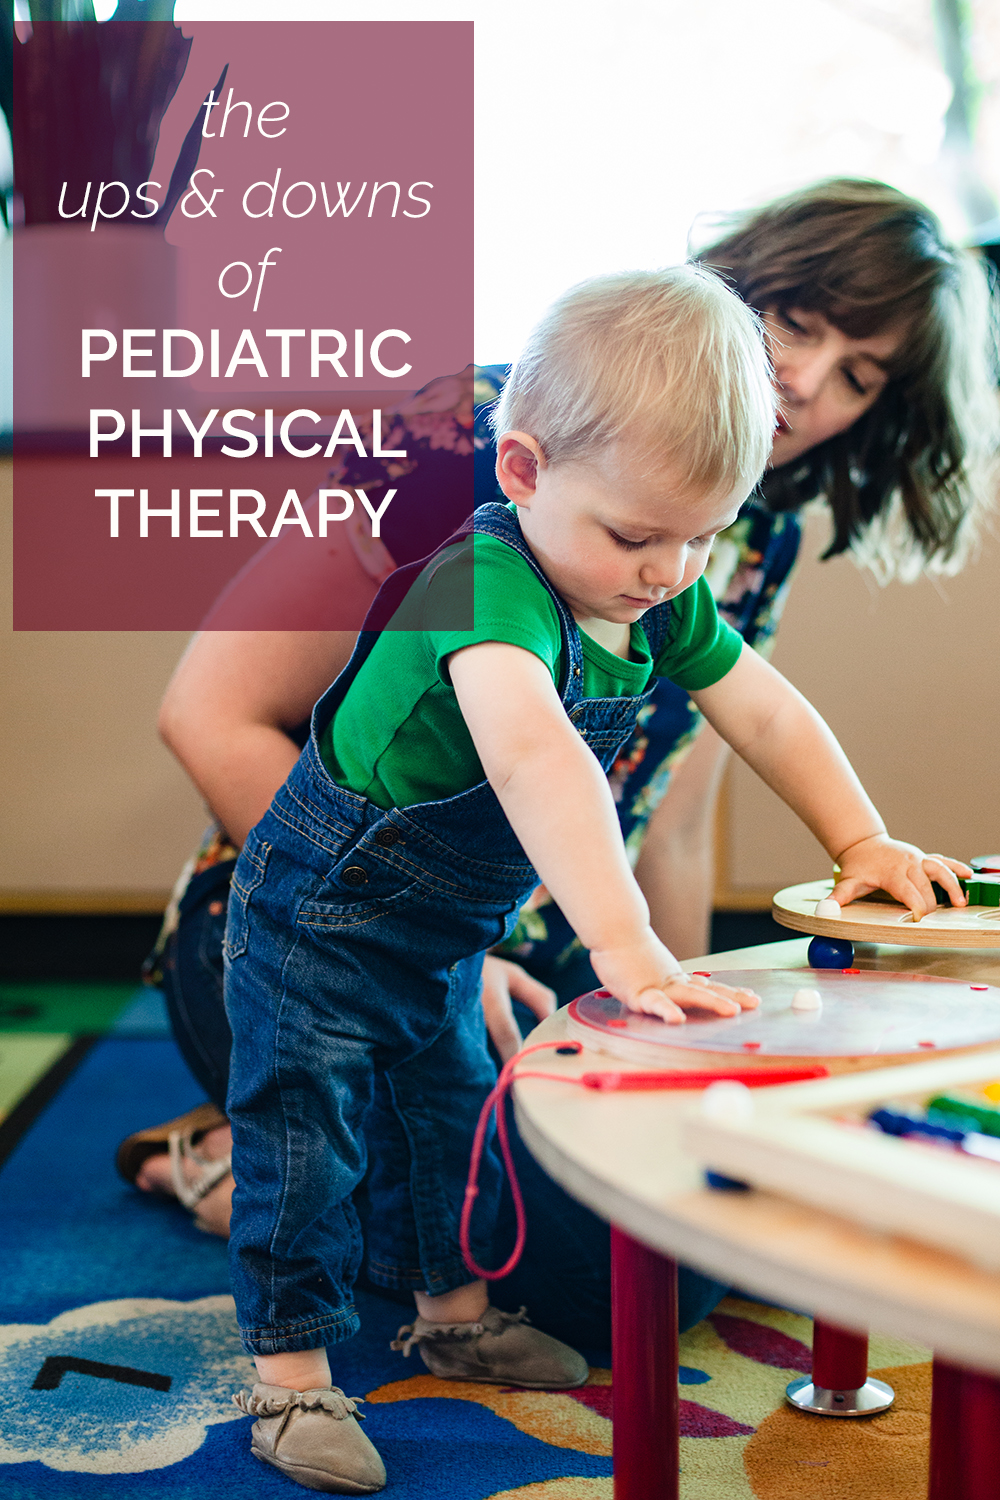 Our boy is nearly 18 months and still isn't walking. What's it like to have a toddler in physical therapy? I'm sharing some of the ups and downs from our experience.